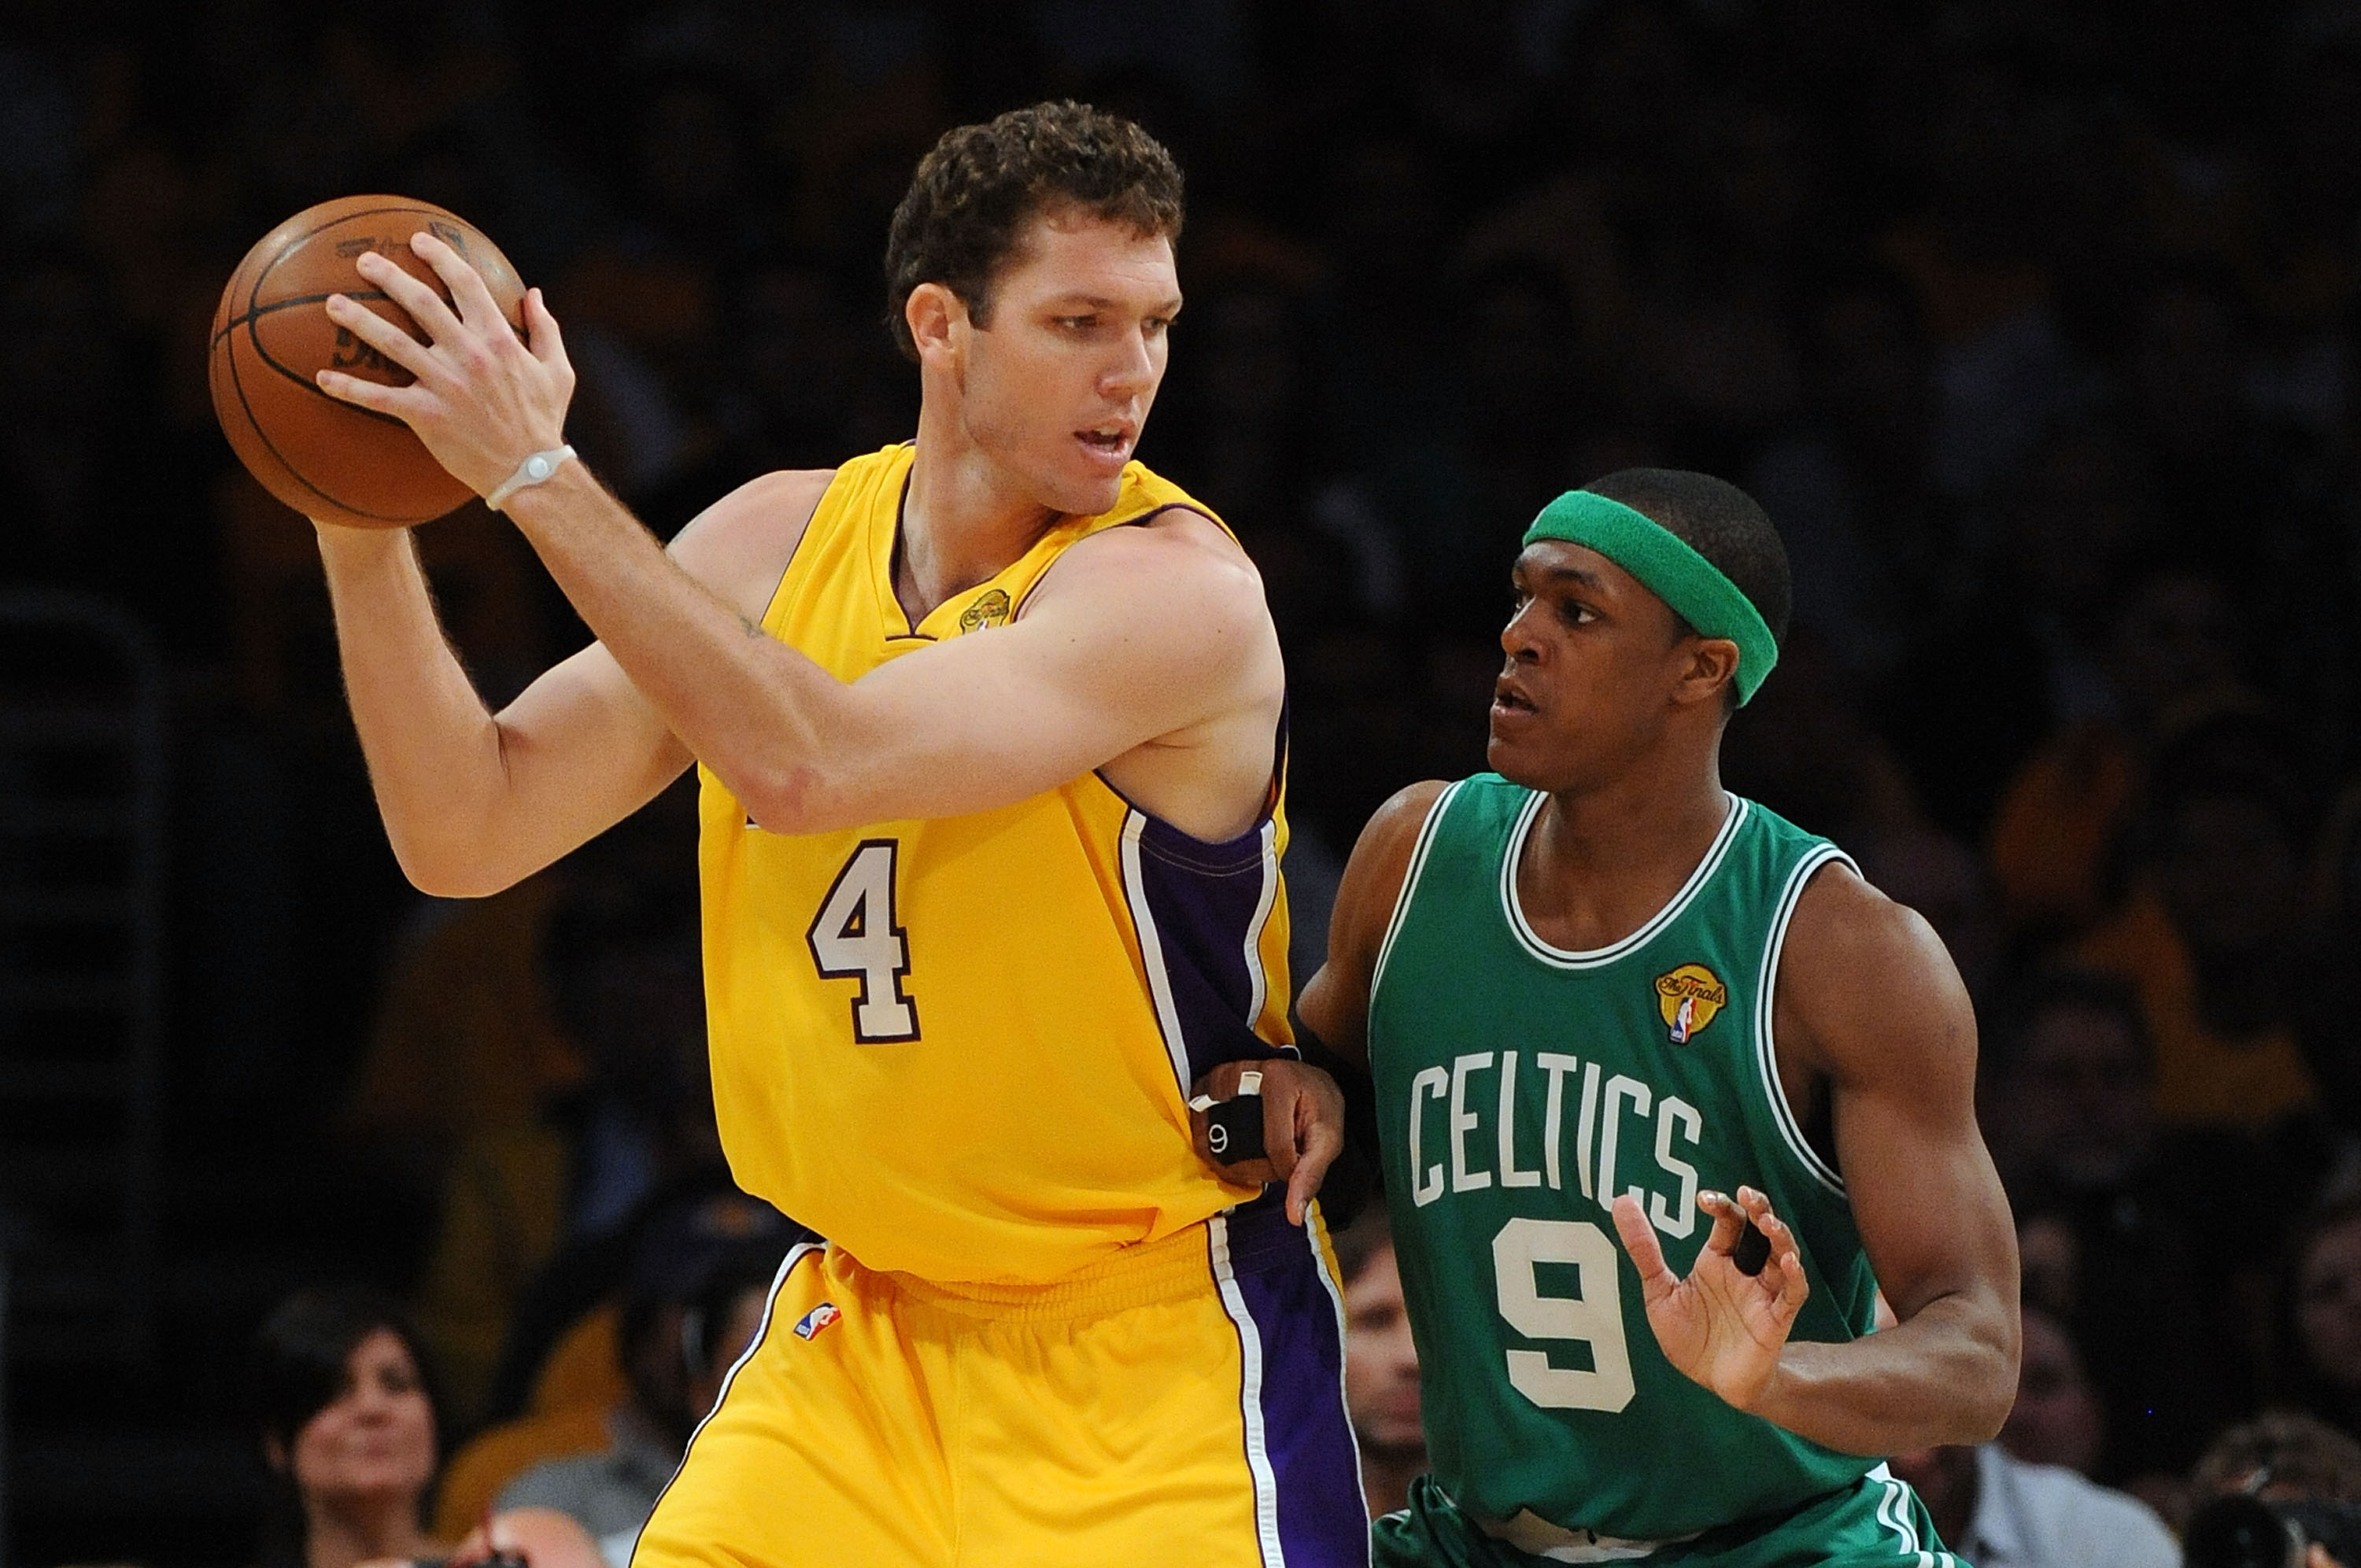 LOS ANGELES, CA - JUNE 03:  Luke Walton #4 of the Los Angeles Lakers looks to pass against Rajon Rondo #9 of the Boston Celtics in Game One of the 2010 NBA Finals at Staples Center on June 3, 2010 in Los Angeles, California.  NOTE TO USER: User expressly